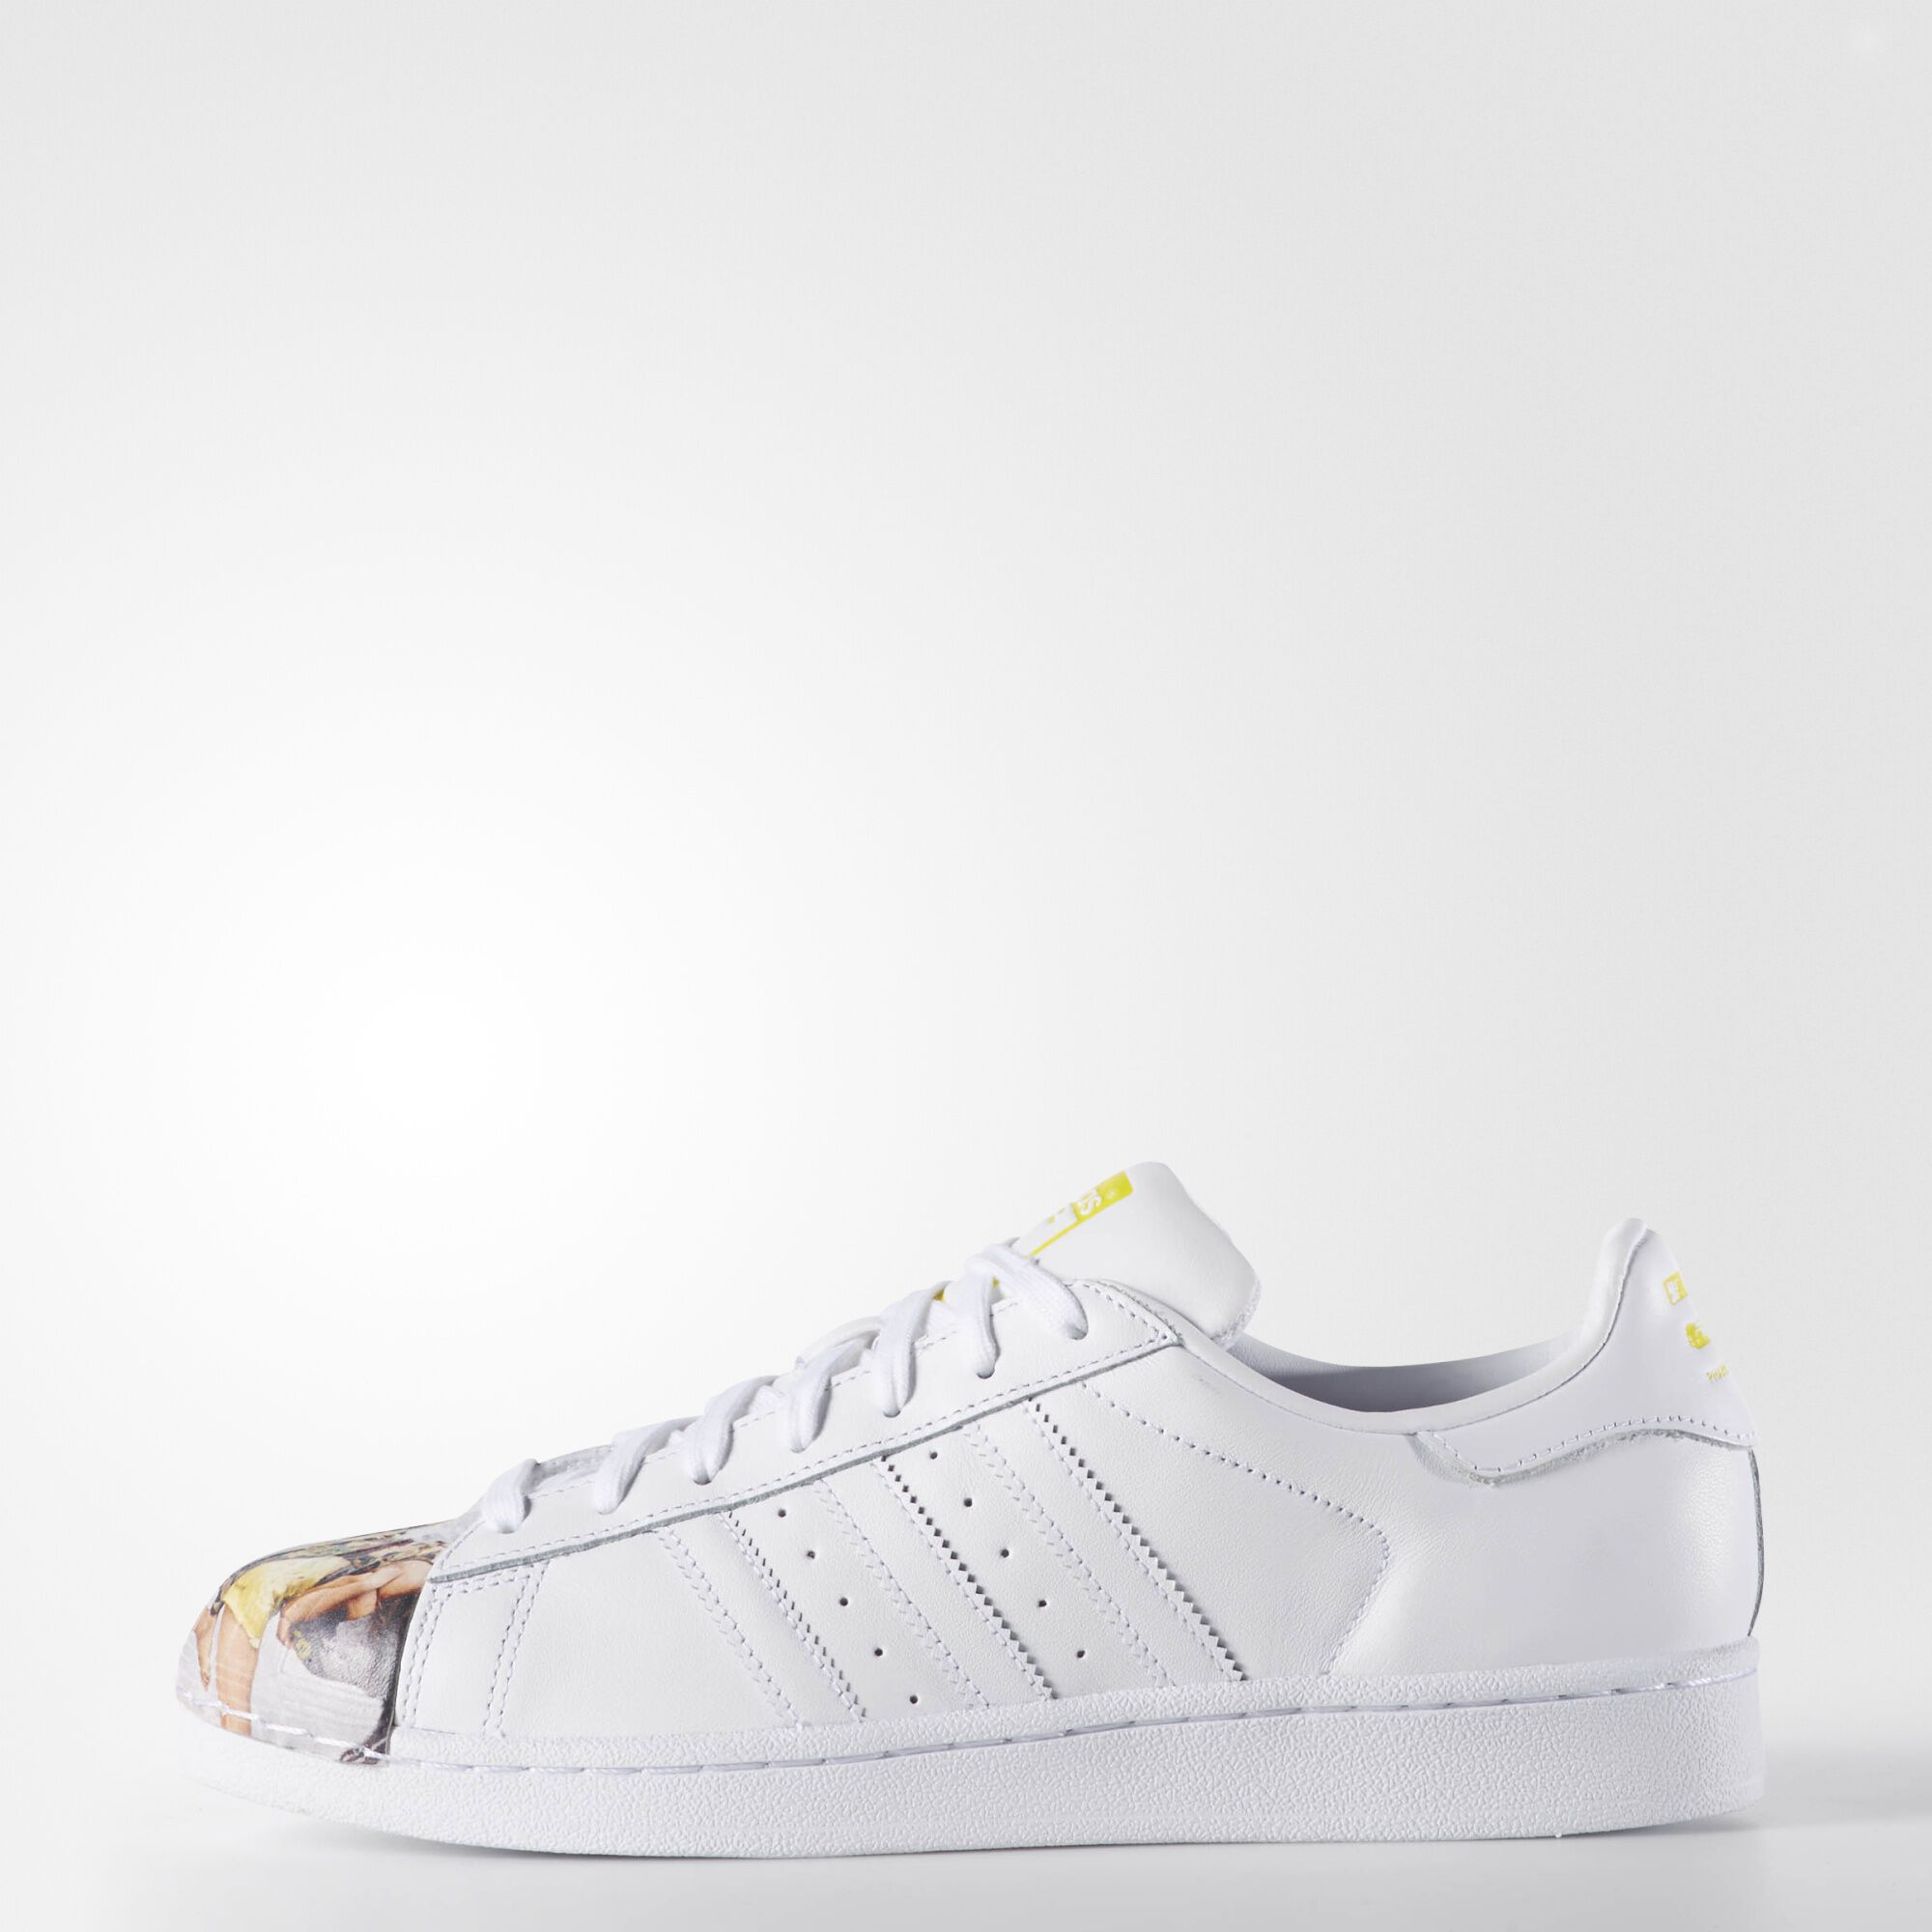 adidas , Zapatillas Originals Superstar Pharrell Supershell Ftwr White / Ftwr White / Yellow S83363